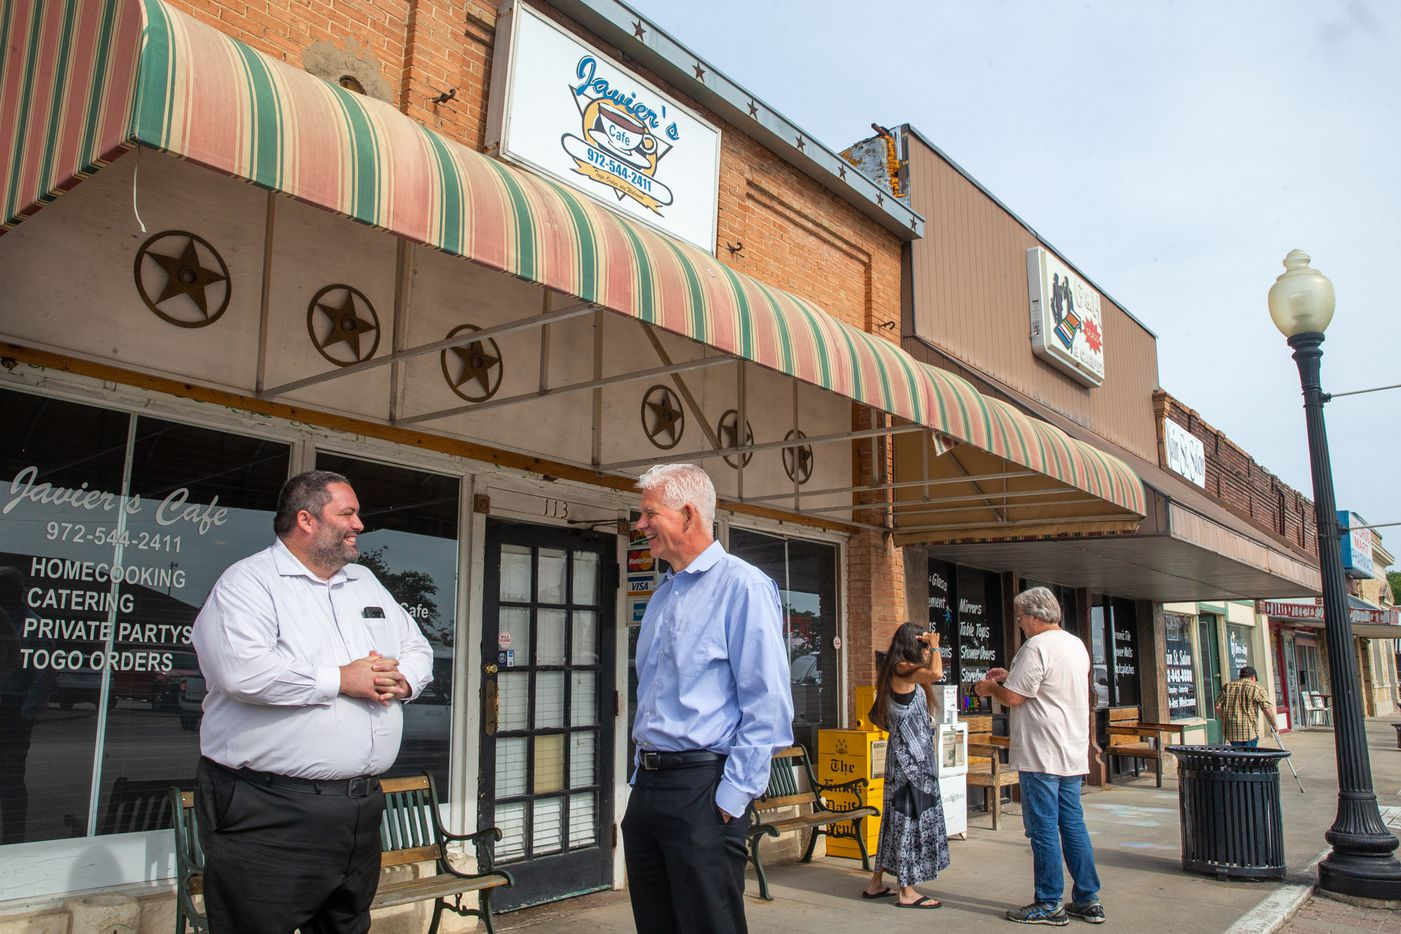 Jason Crawford (left) and Barry Moore visit with one another outside Javier's Cafe in the historic downtown square of Ferris, . The 5,200-acre Woodstone residential development is planned to be built along Interstate 45 in the north Ellis County town of Ferris, and could bring thousands of new homes to the area. (Lynda M. Gonzalez/The Dallas Morning News)